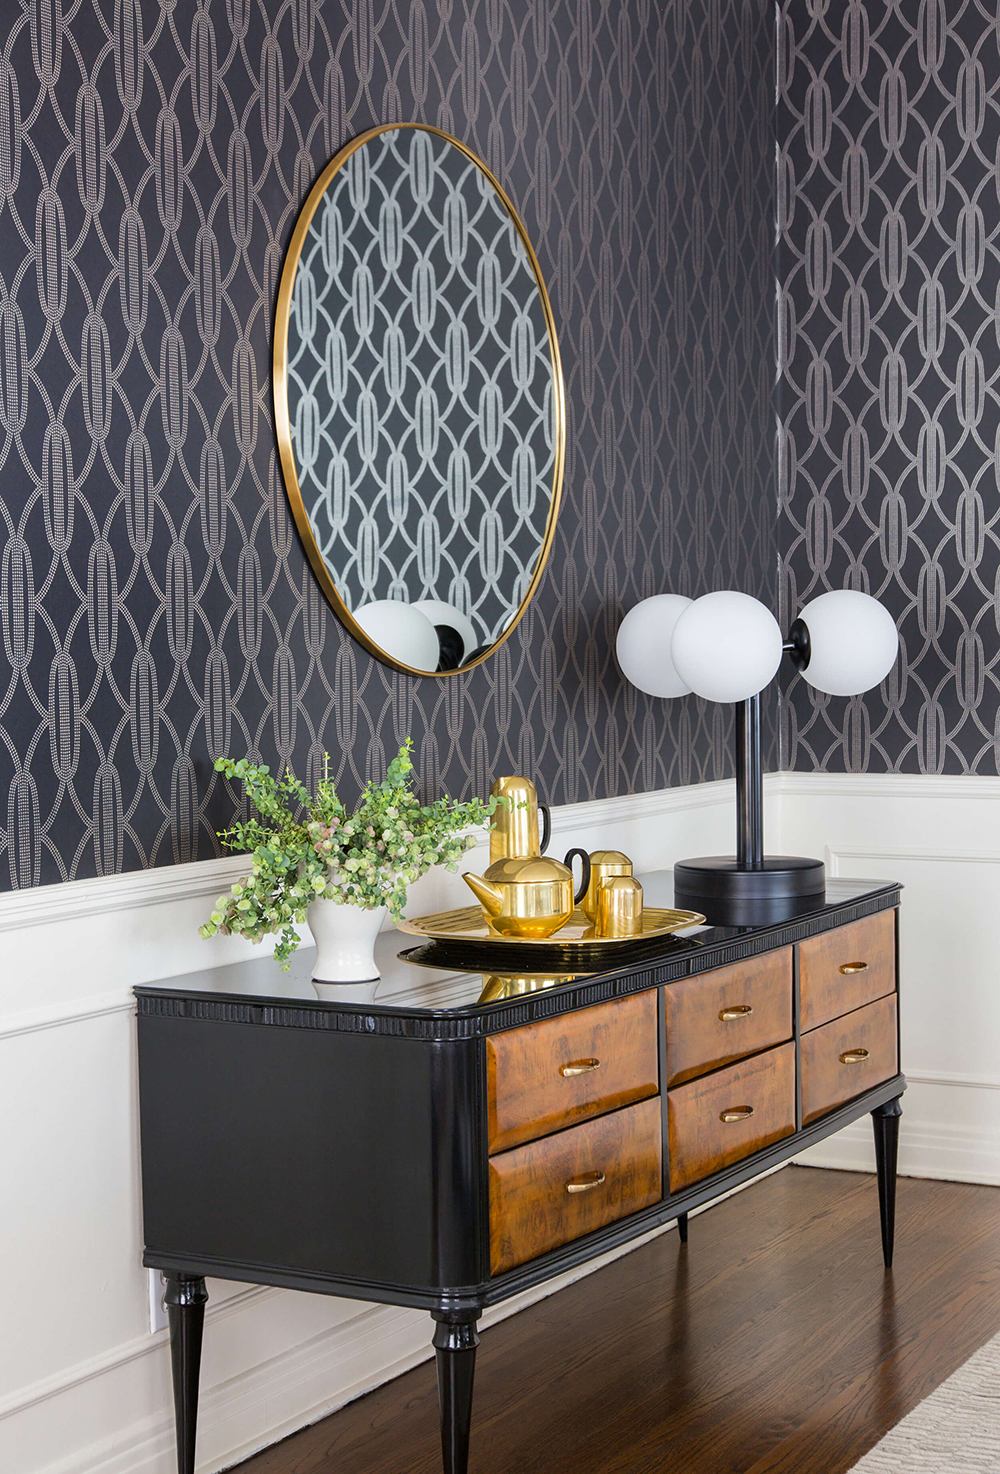 6 Ways to Style a Dining Room Sideboard - roomfortuesday.com